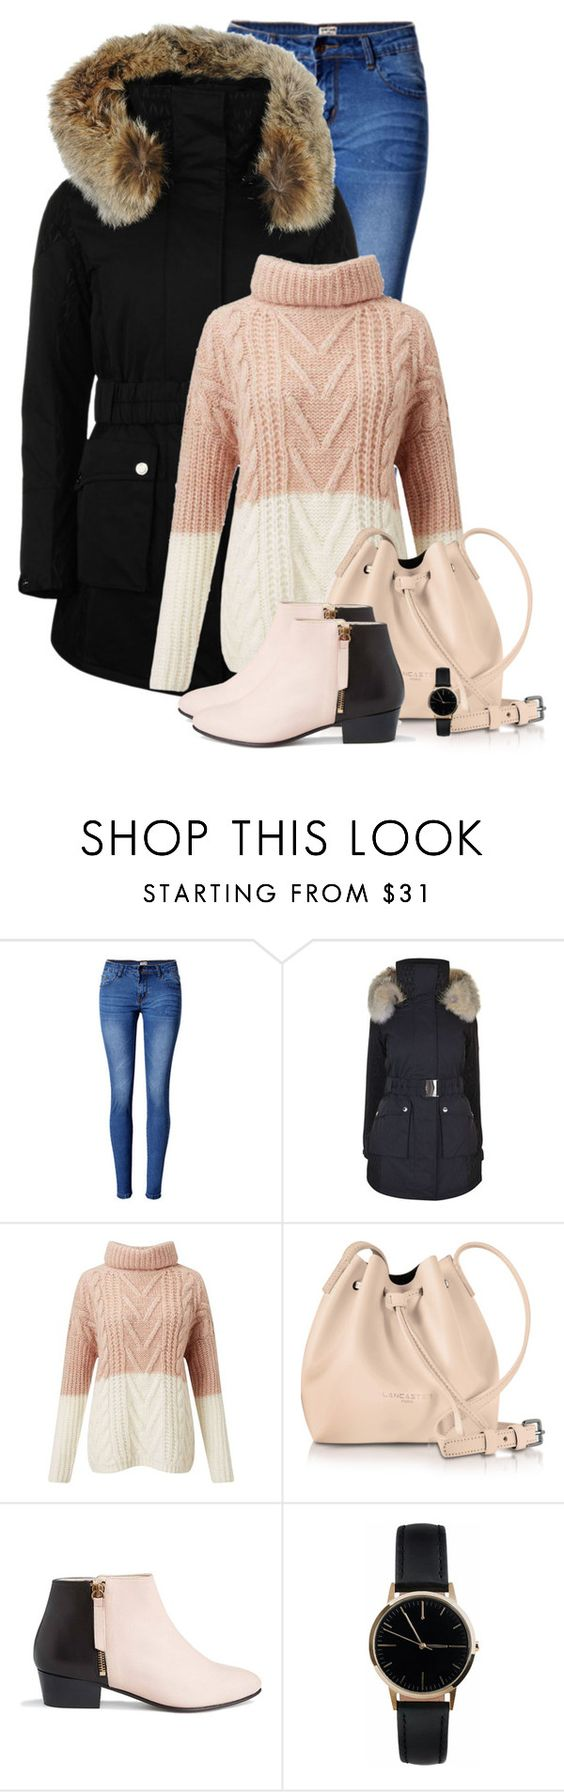 """""""Parka"""" by barbarapoole ❤ liked on Polyvore featuring WithChic, K100 Karrimor, Miss Selfridge, Lancaster, Nine to Five and Freedom To Exist"""